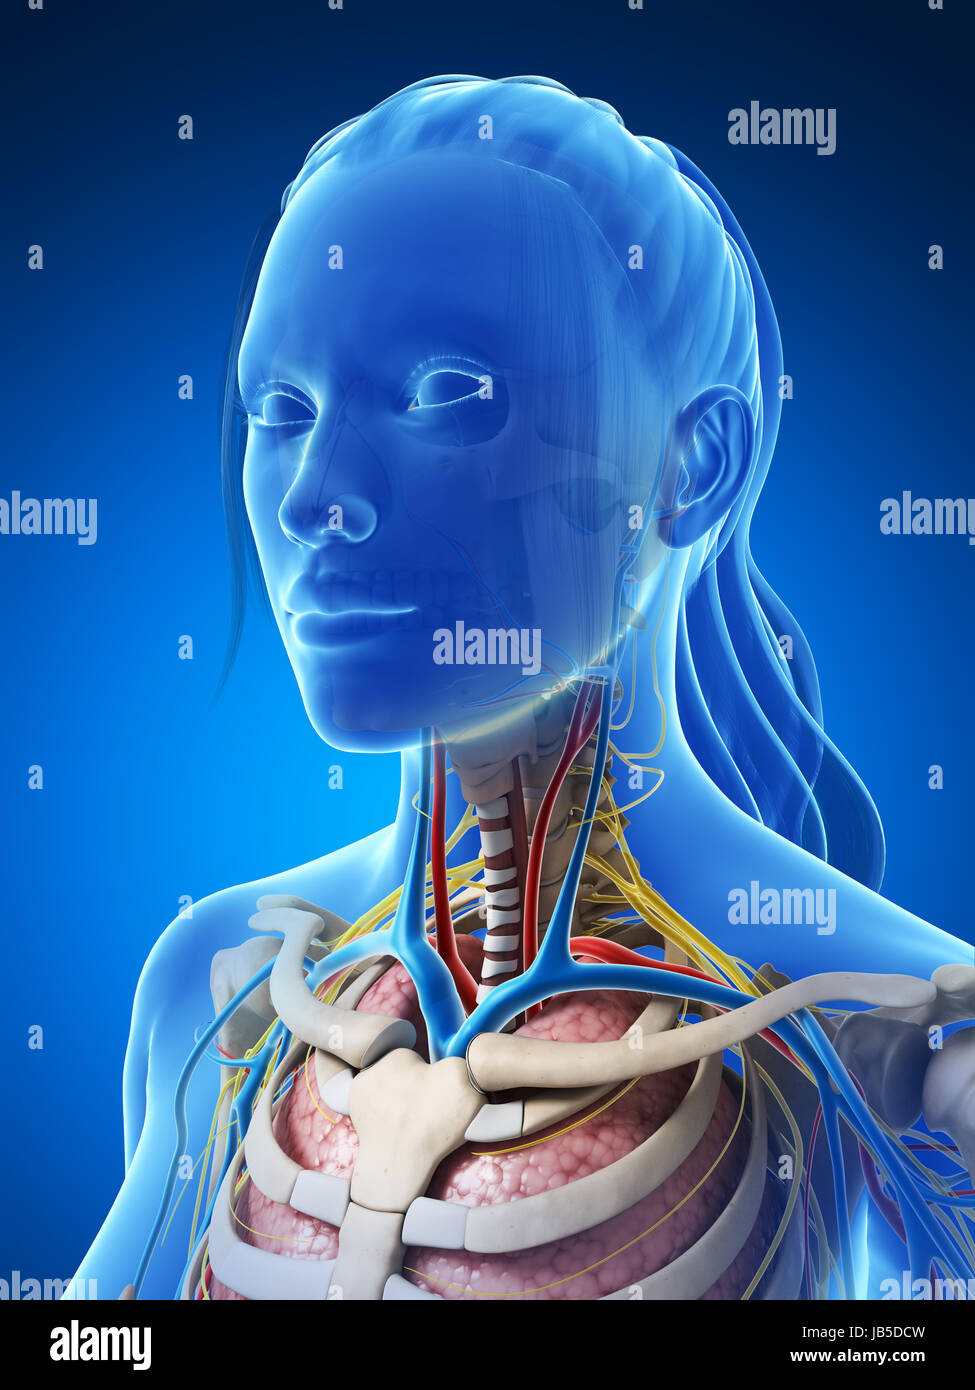 Female Anatomy Diagram High Resolution Stock Photography And Images